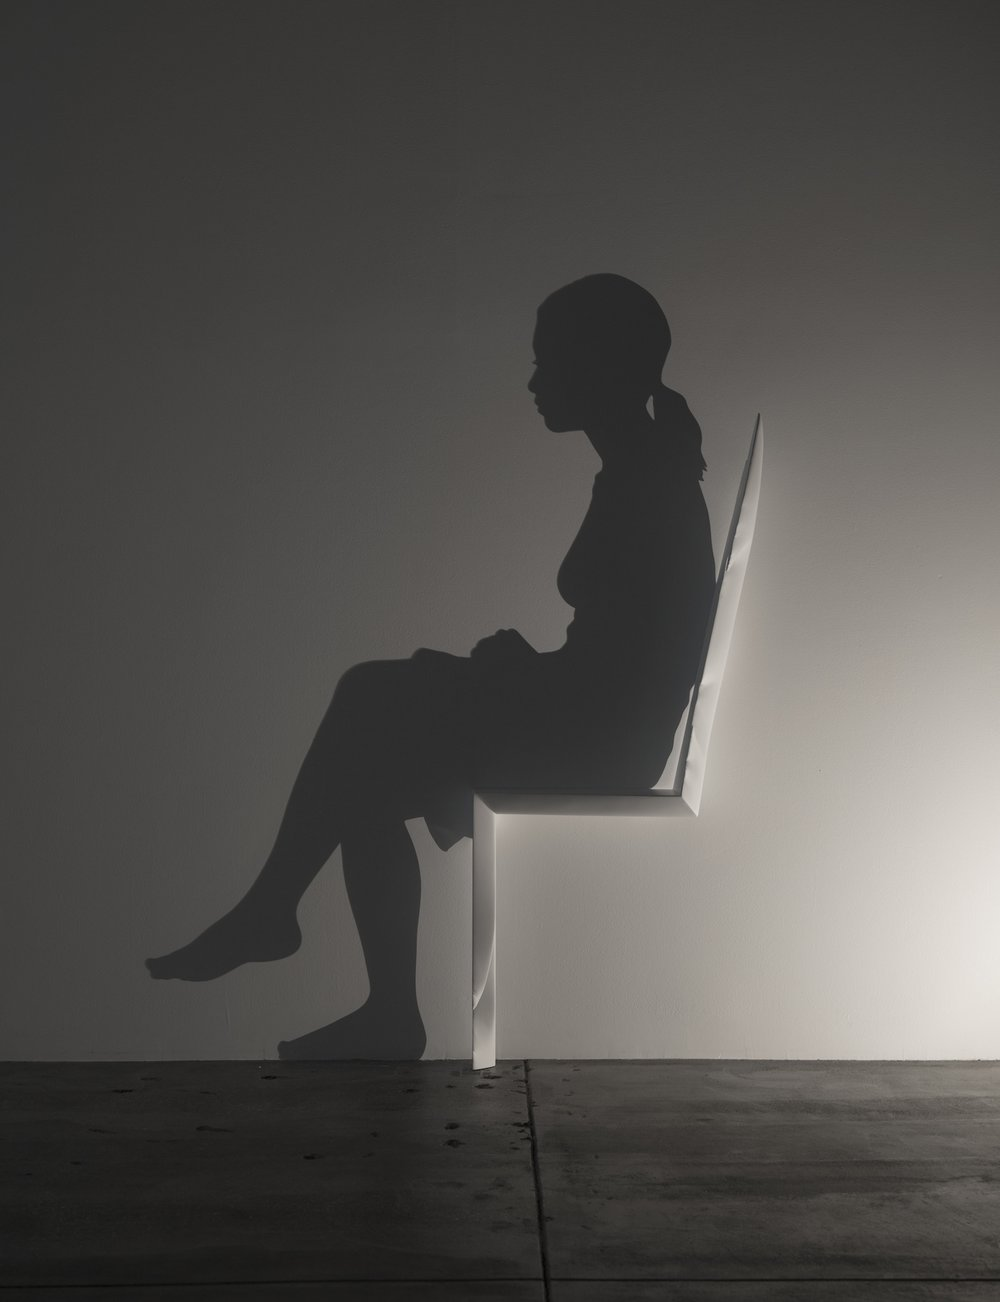 CHAIR    2014 H110, W50, D15 cm Carved wood, single light source, shadow Private collection